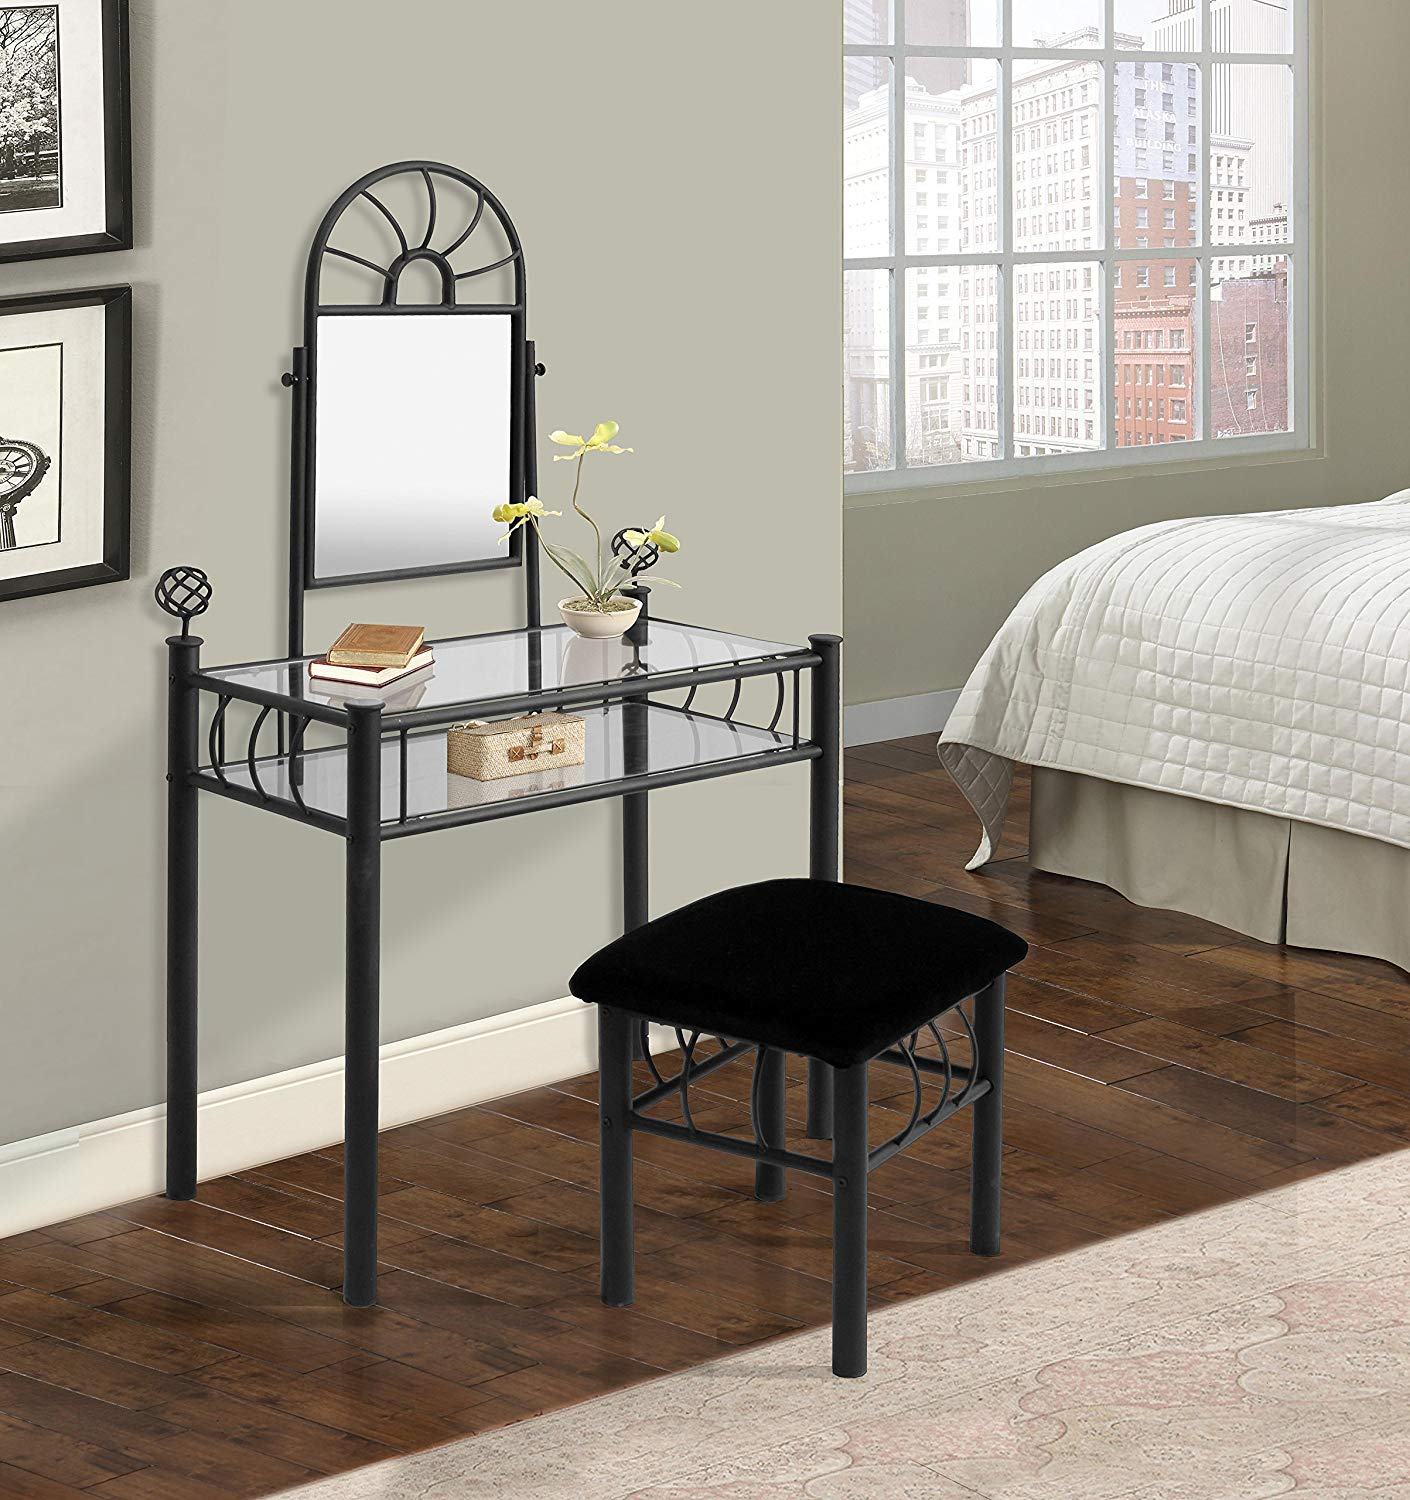 Industries 200-6032 Vanity with Upholstered Bench, Black